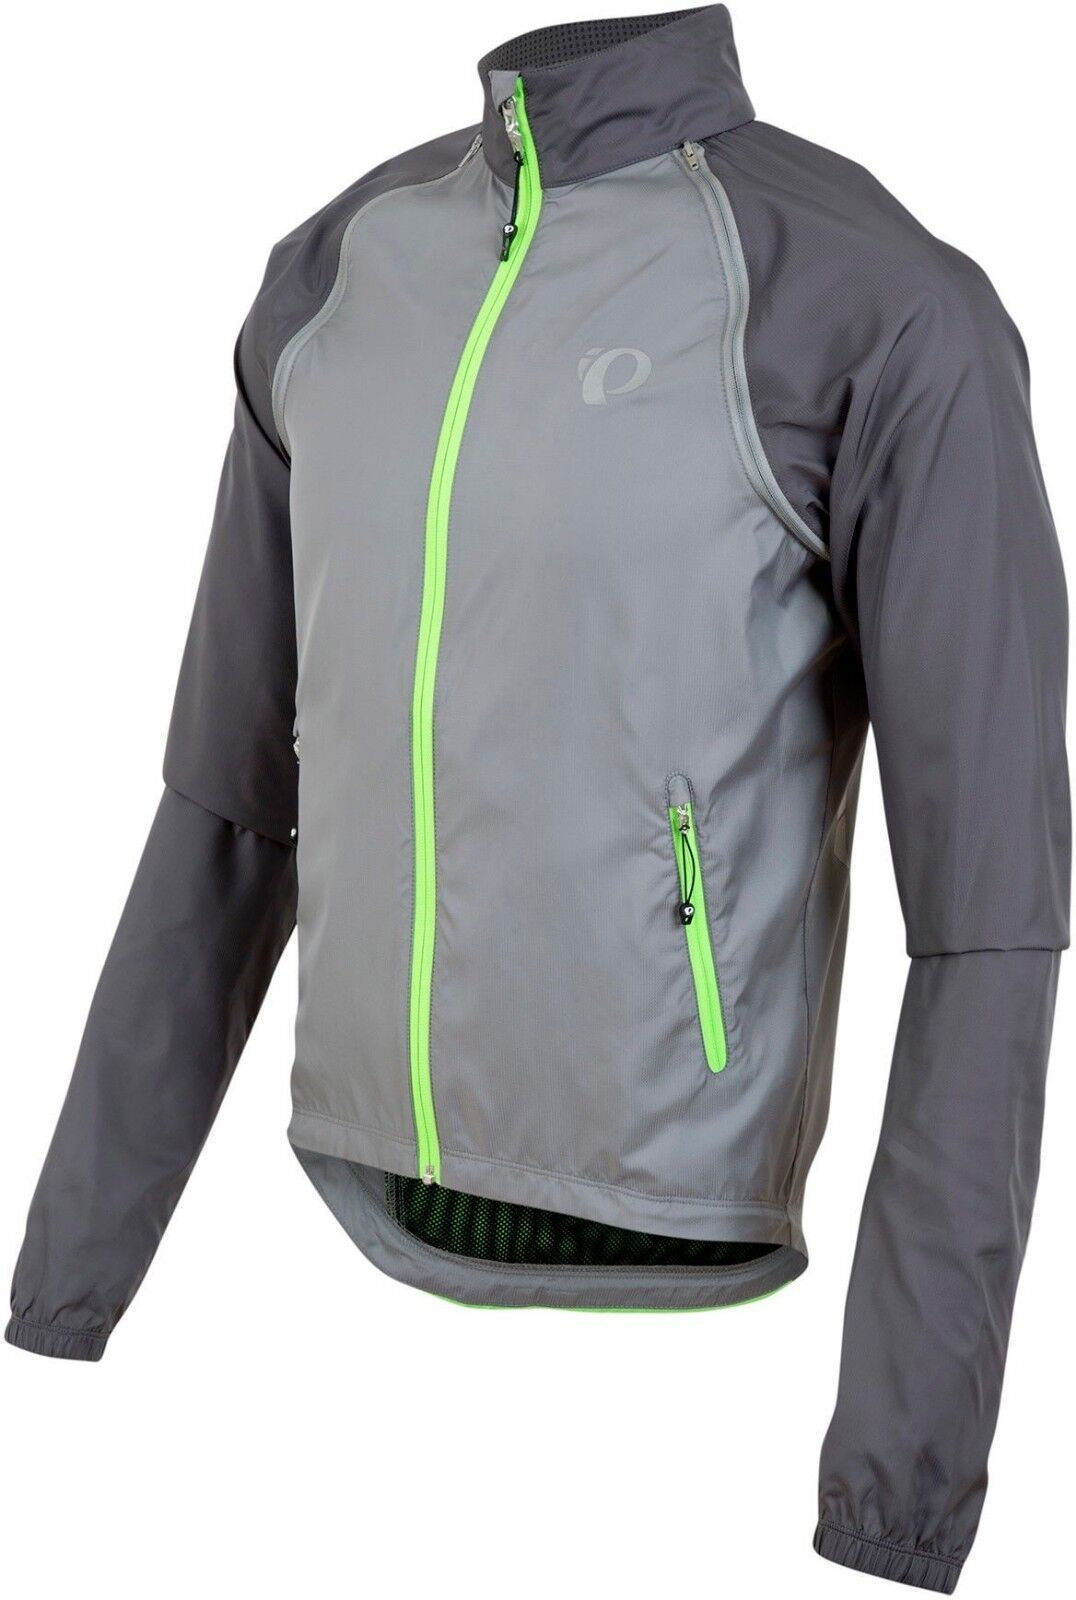 Pearl Izumi   Elite Barrier ConGrünible Jacket   Jacke  139,95 Euro NEU  141